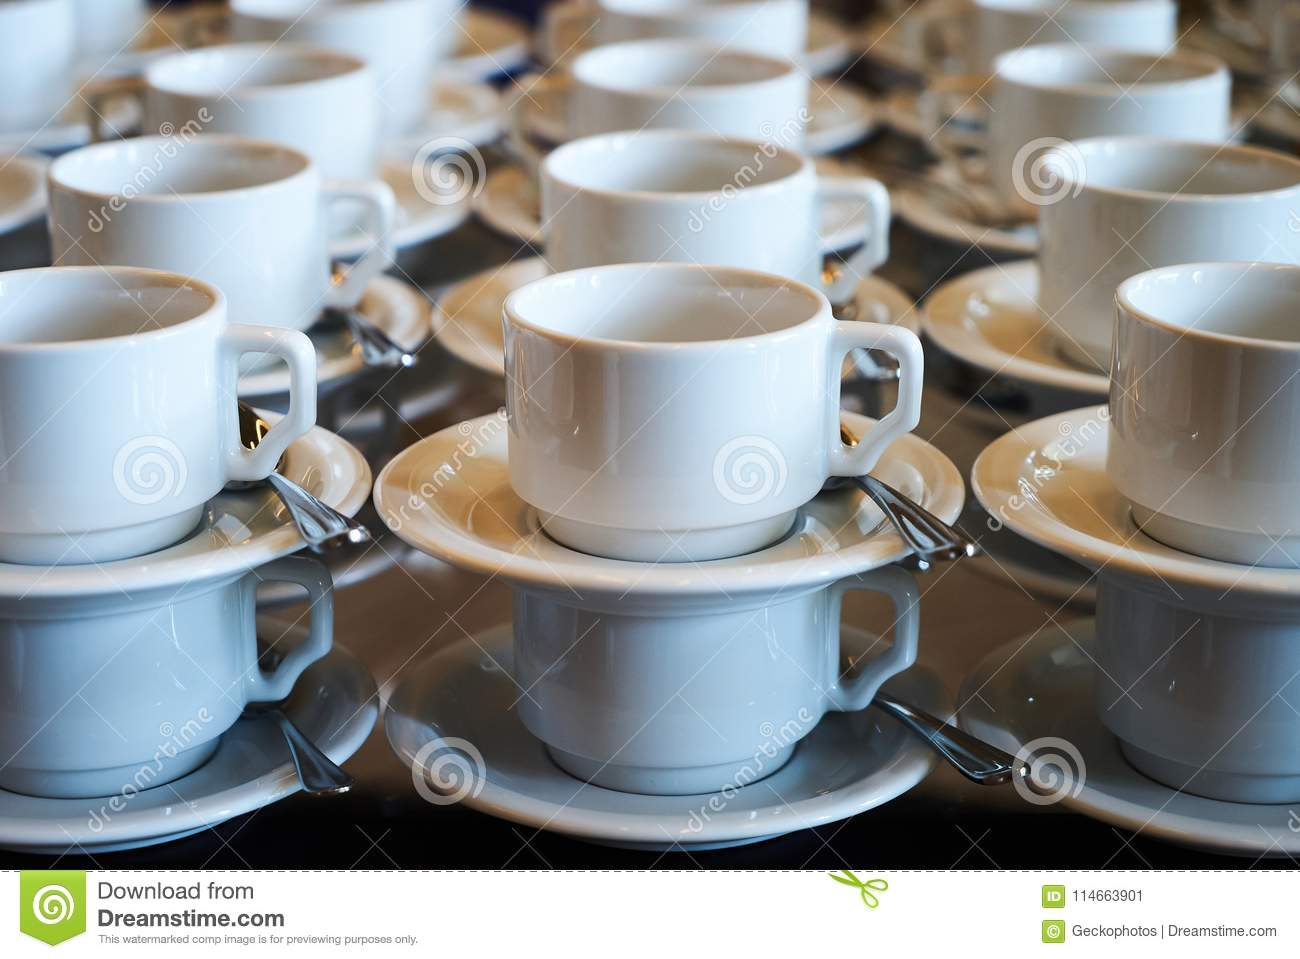 White Ceramic Coffee Cups Set Of Empty White Ceramic Tea Or Coffee Cup And Saucers